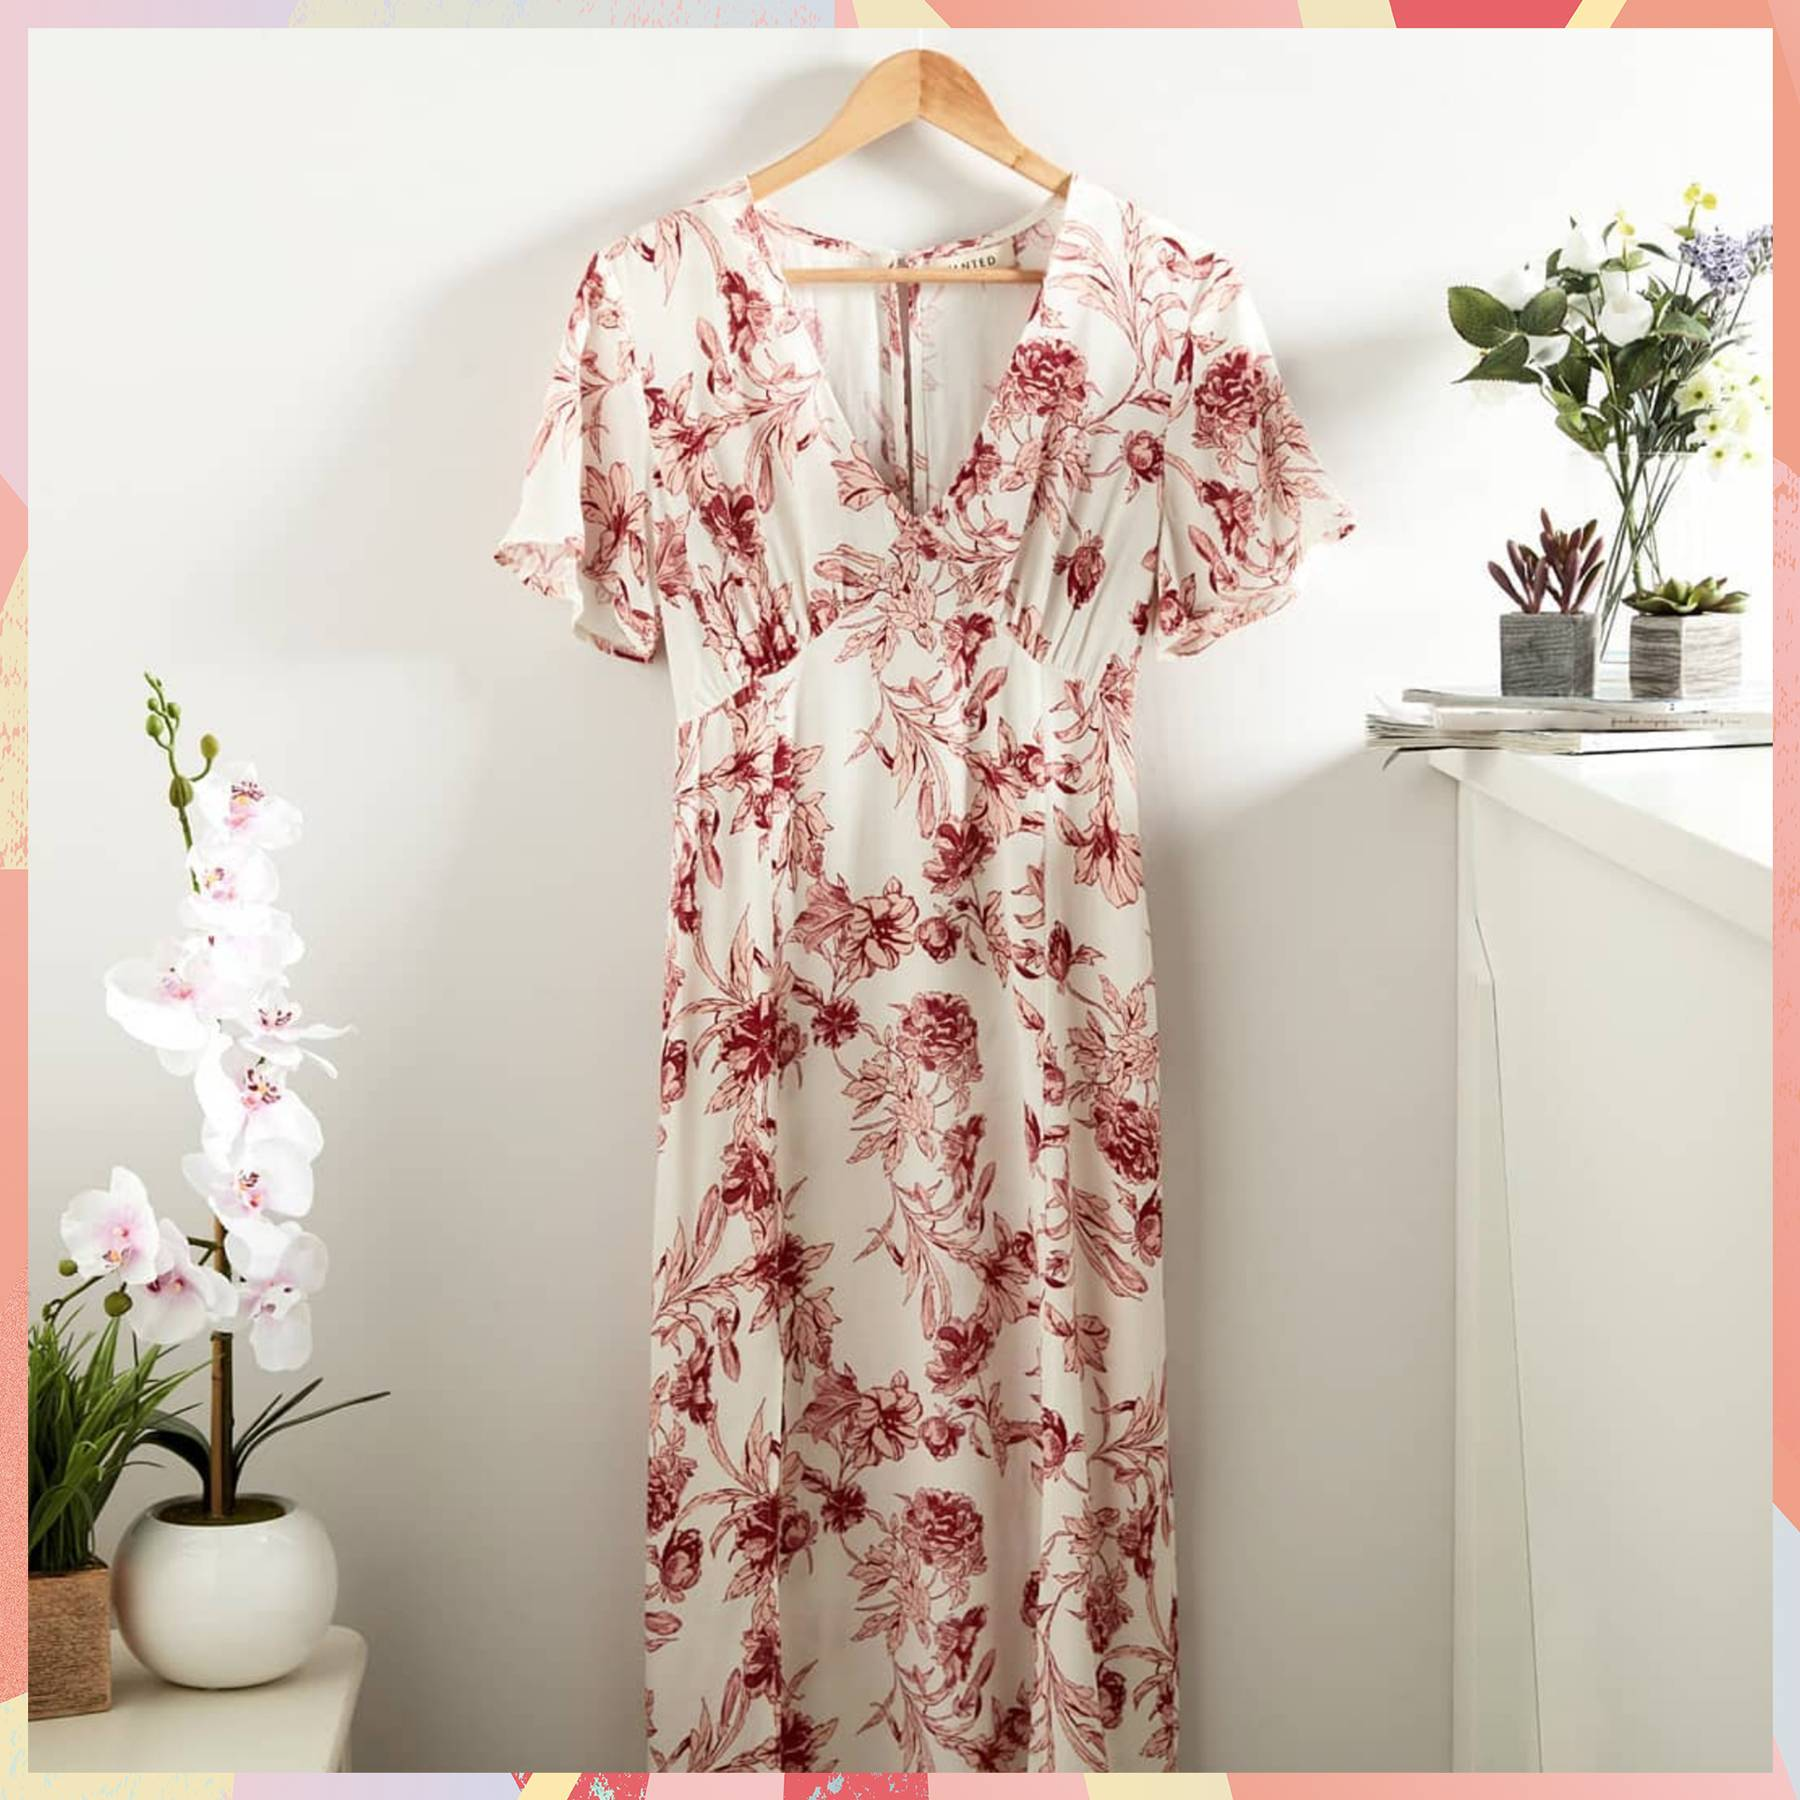 a3bdfd9fff048 This Primark Floral Dress Has Sent Instagram Into A Frenzy | Glamour UK